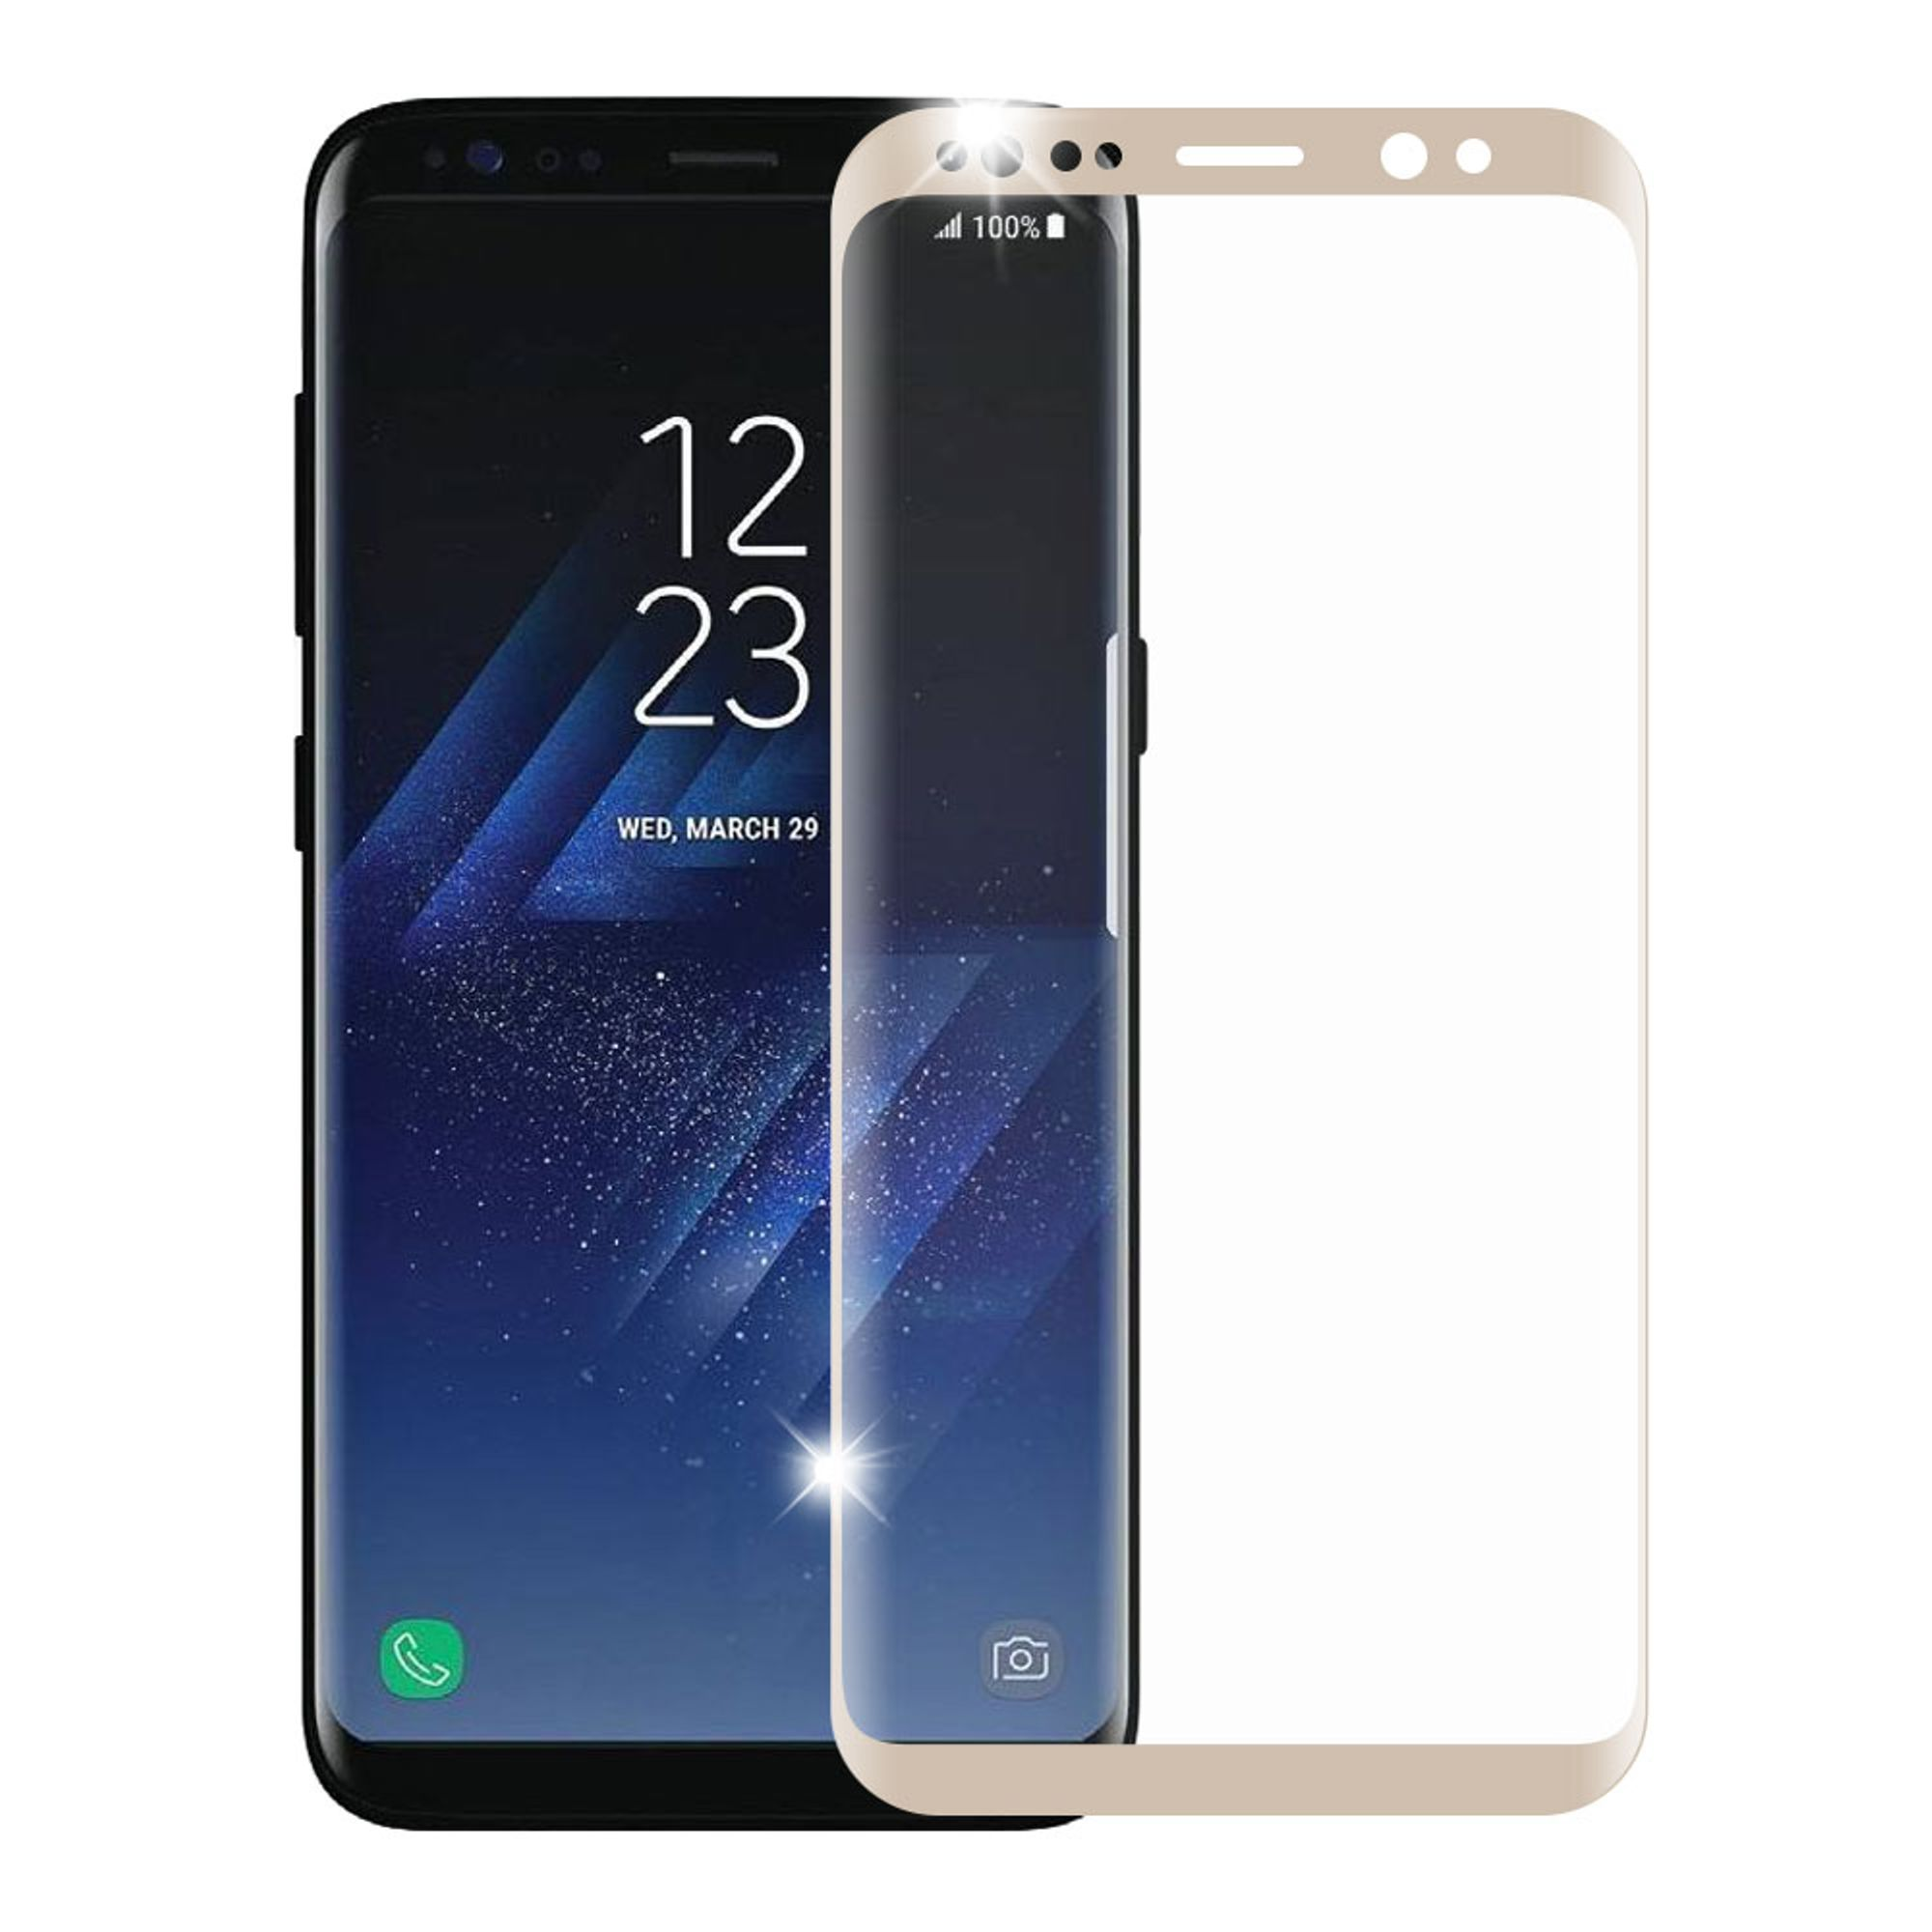 Samsung Galaxy S8+ Screen Protector, Samsung Galaxy S8 Plus Screen Protector, by Insten Full Coverage Tempered Glass Screen Protector For Samsung Galaxy S8 Plus